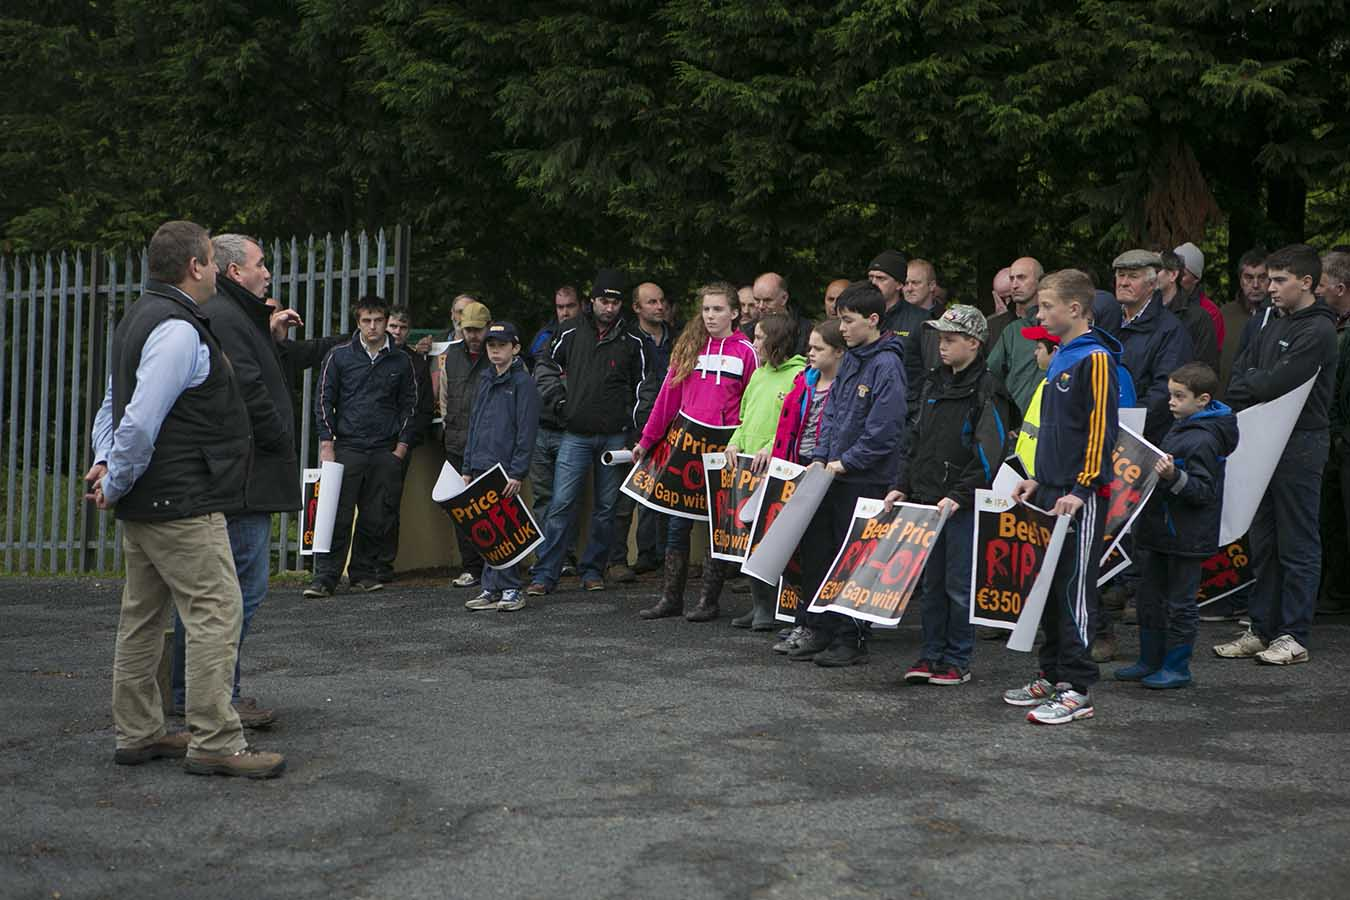 Tom Shortt and Derek Dean address protesters in Hacketstown on Monday afternoon